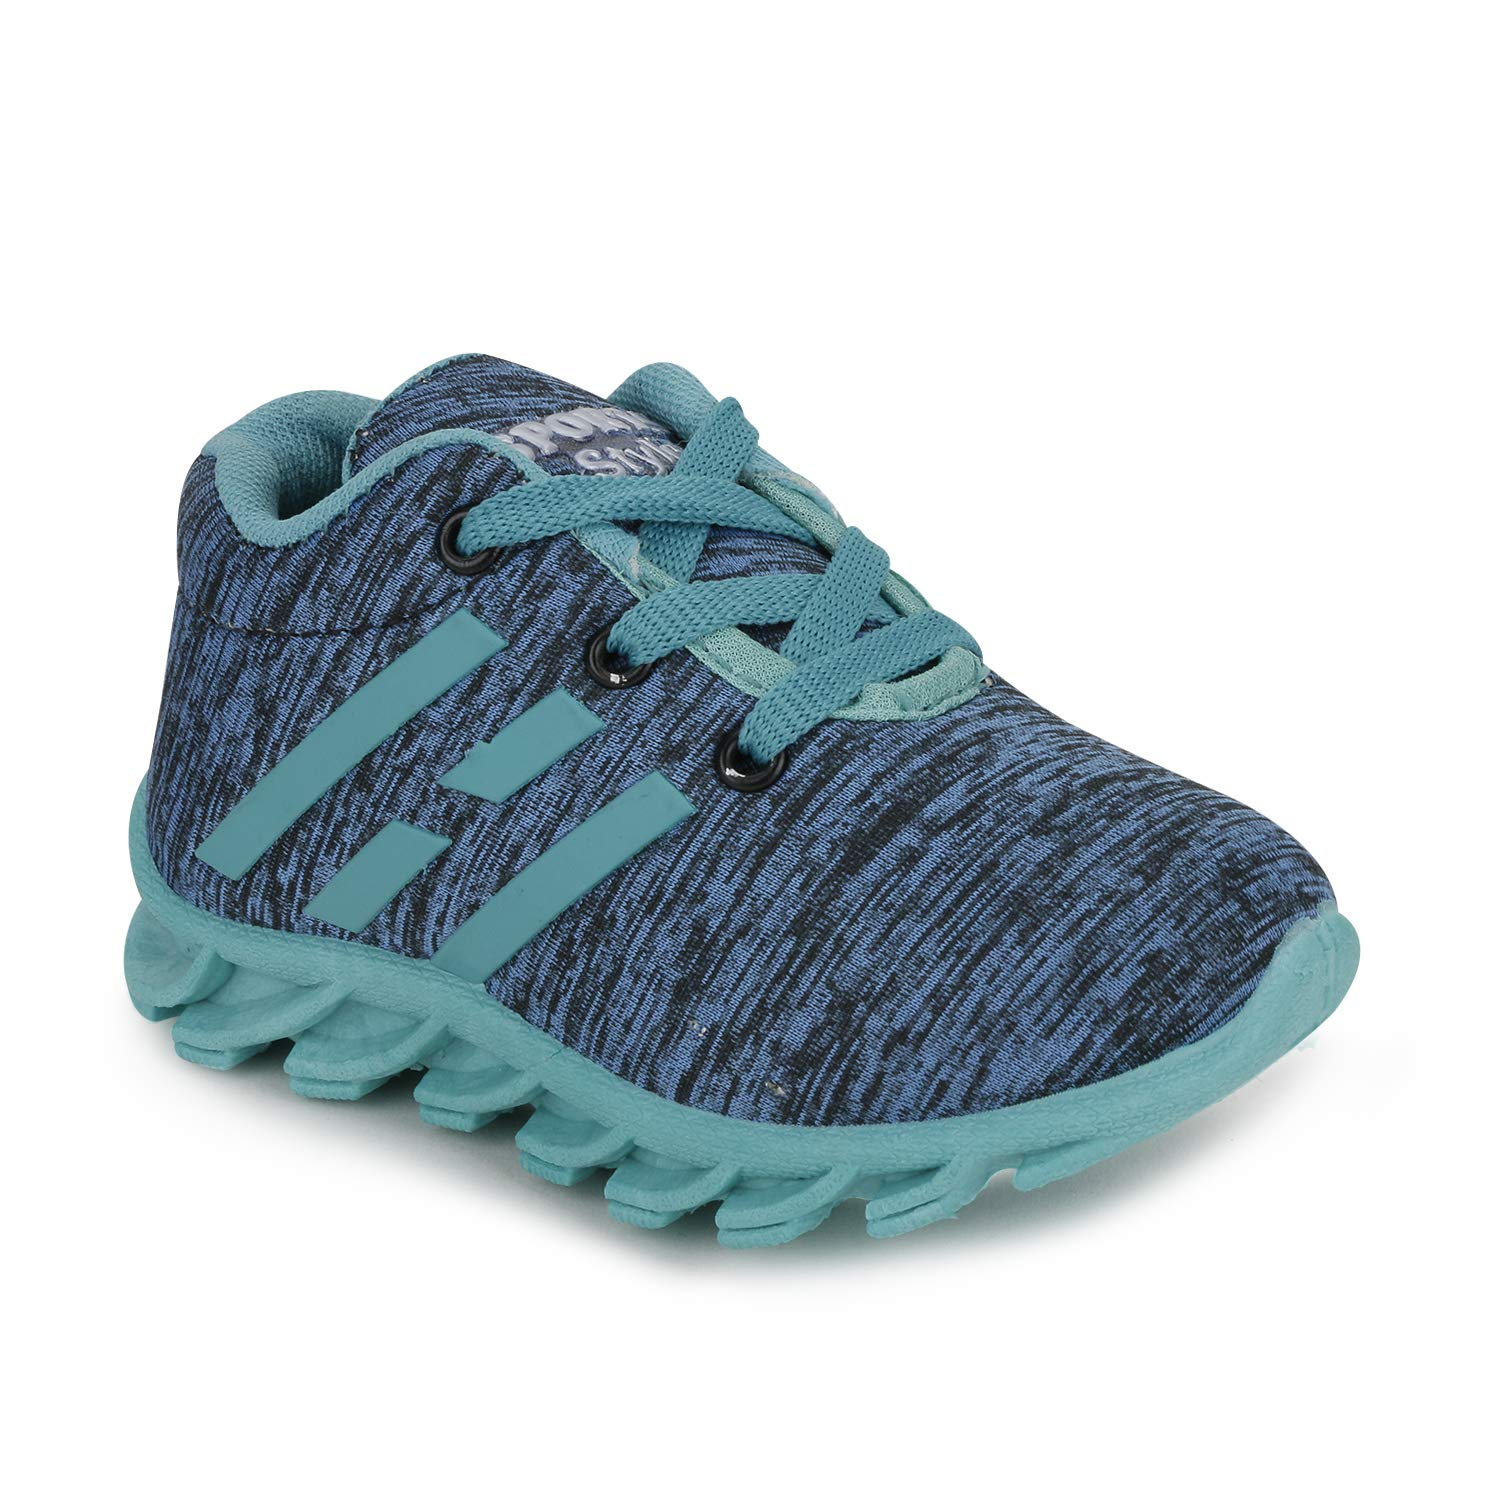 NEOBABY Causal Shoes for Age Group 12